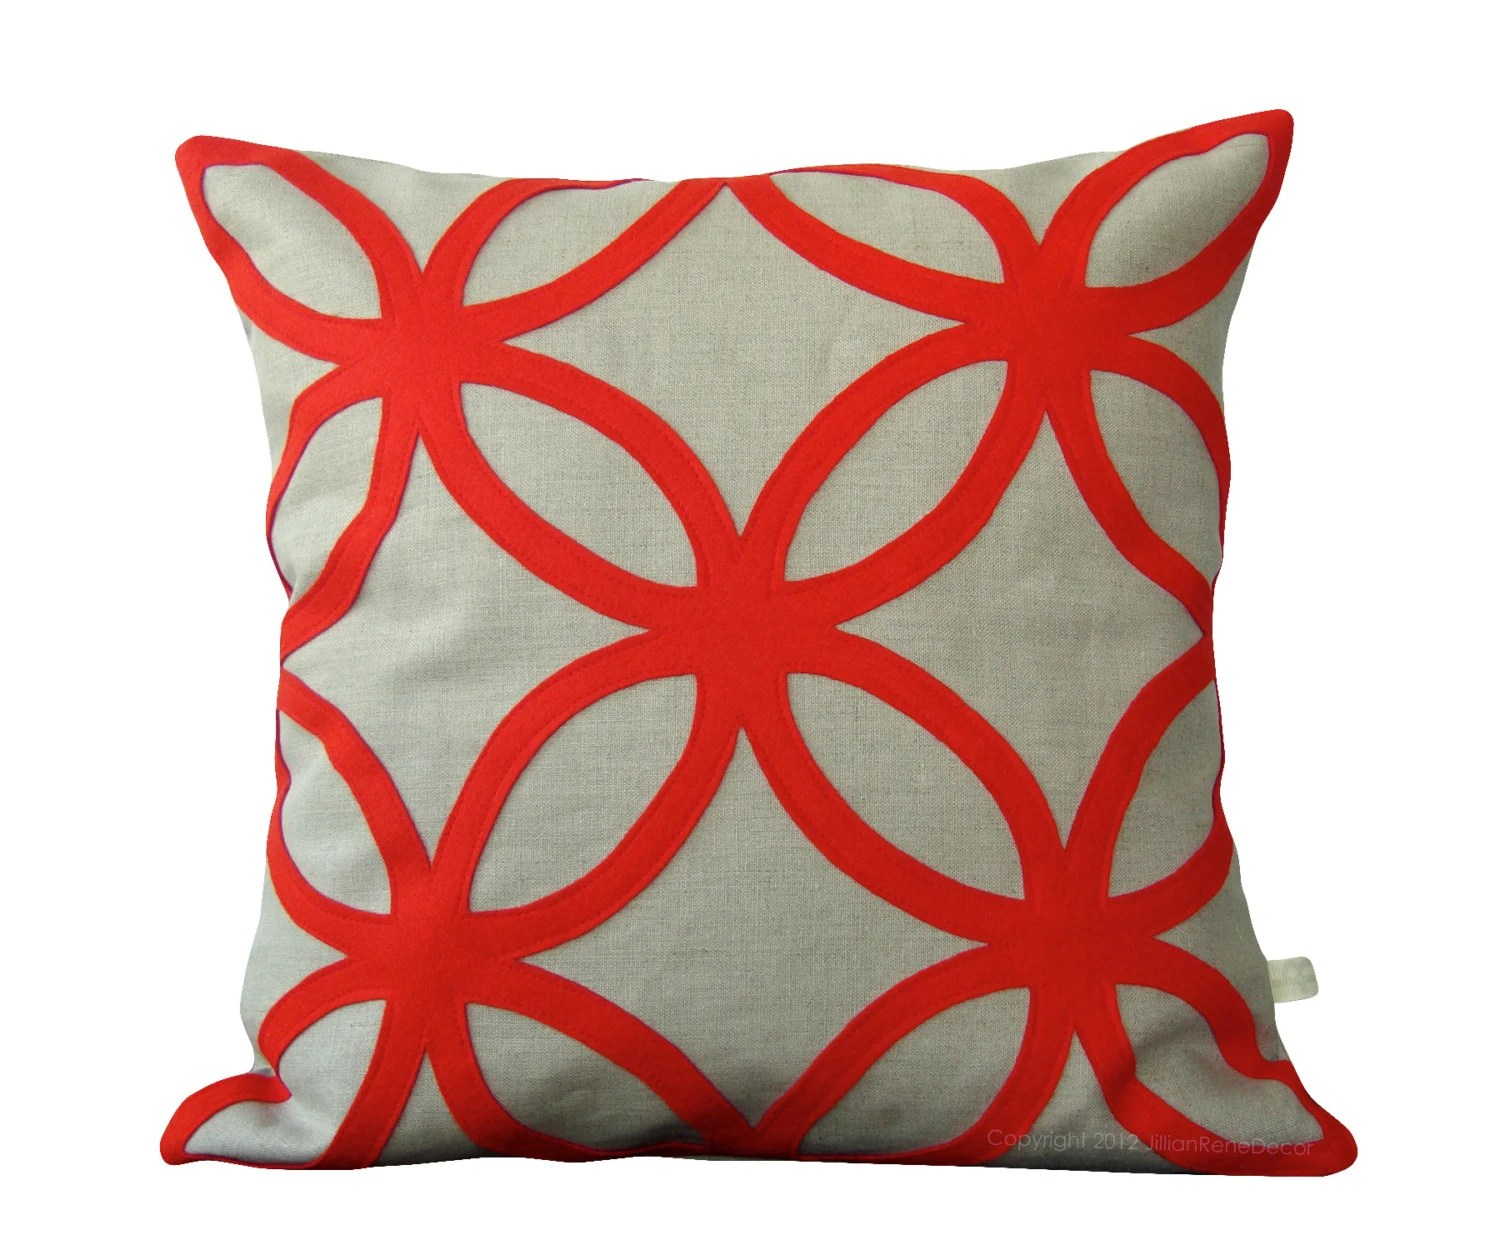 Mod Red DECORATIVE PILLOW COVER - Geometric Felt Design - Holiday Home Decor by JillianReneDecor Interior Design Christmas Gift for Her